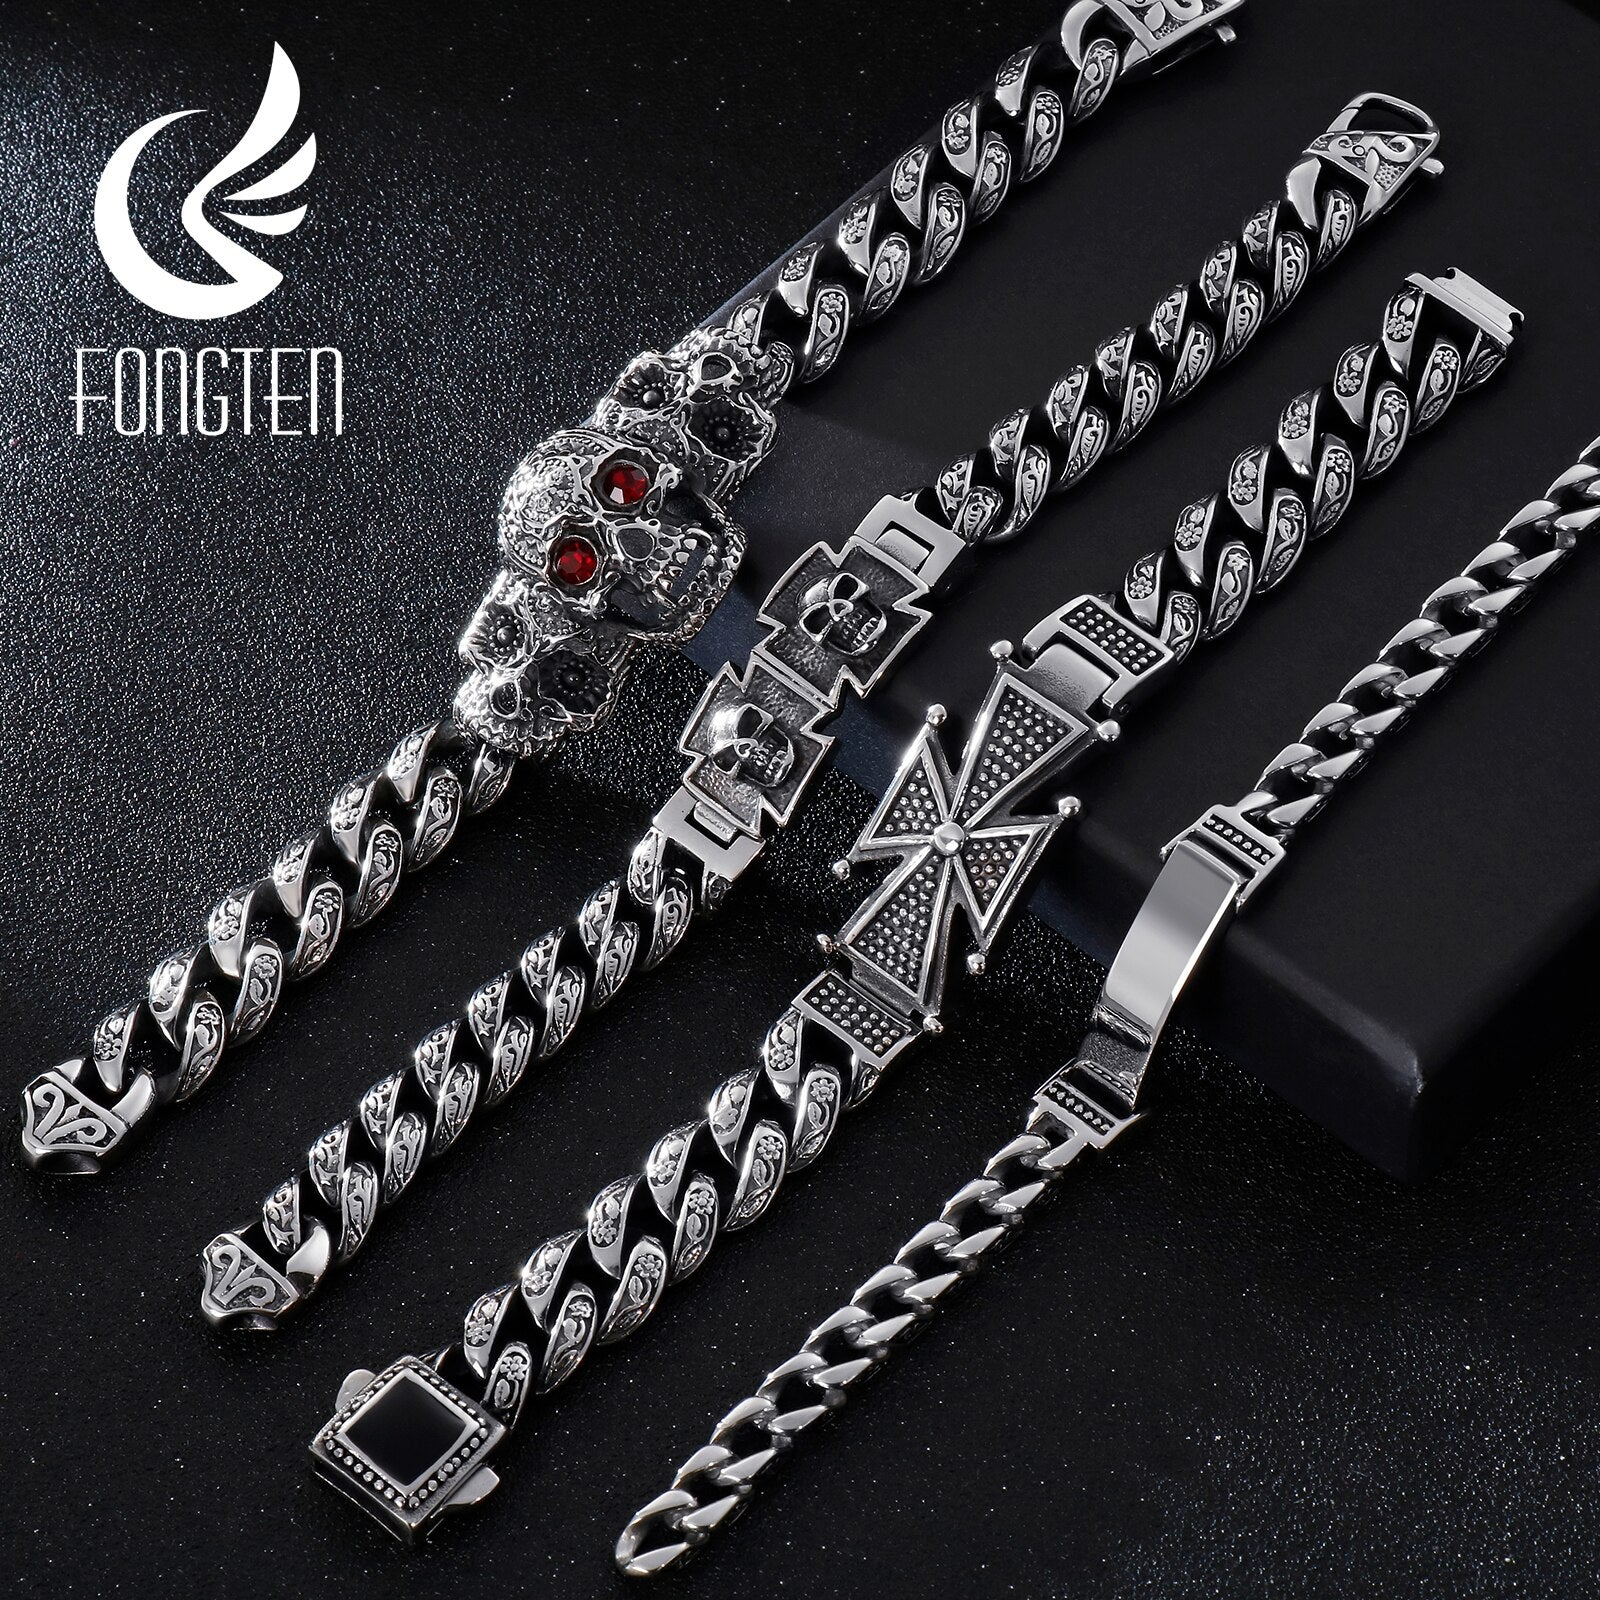 Fongten Skull Cross Curb Men's Bracelet Vintage Black